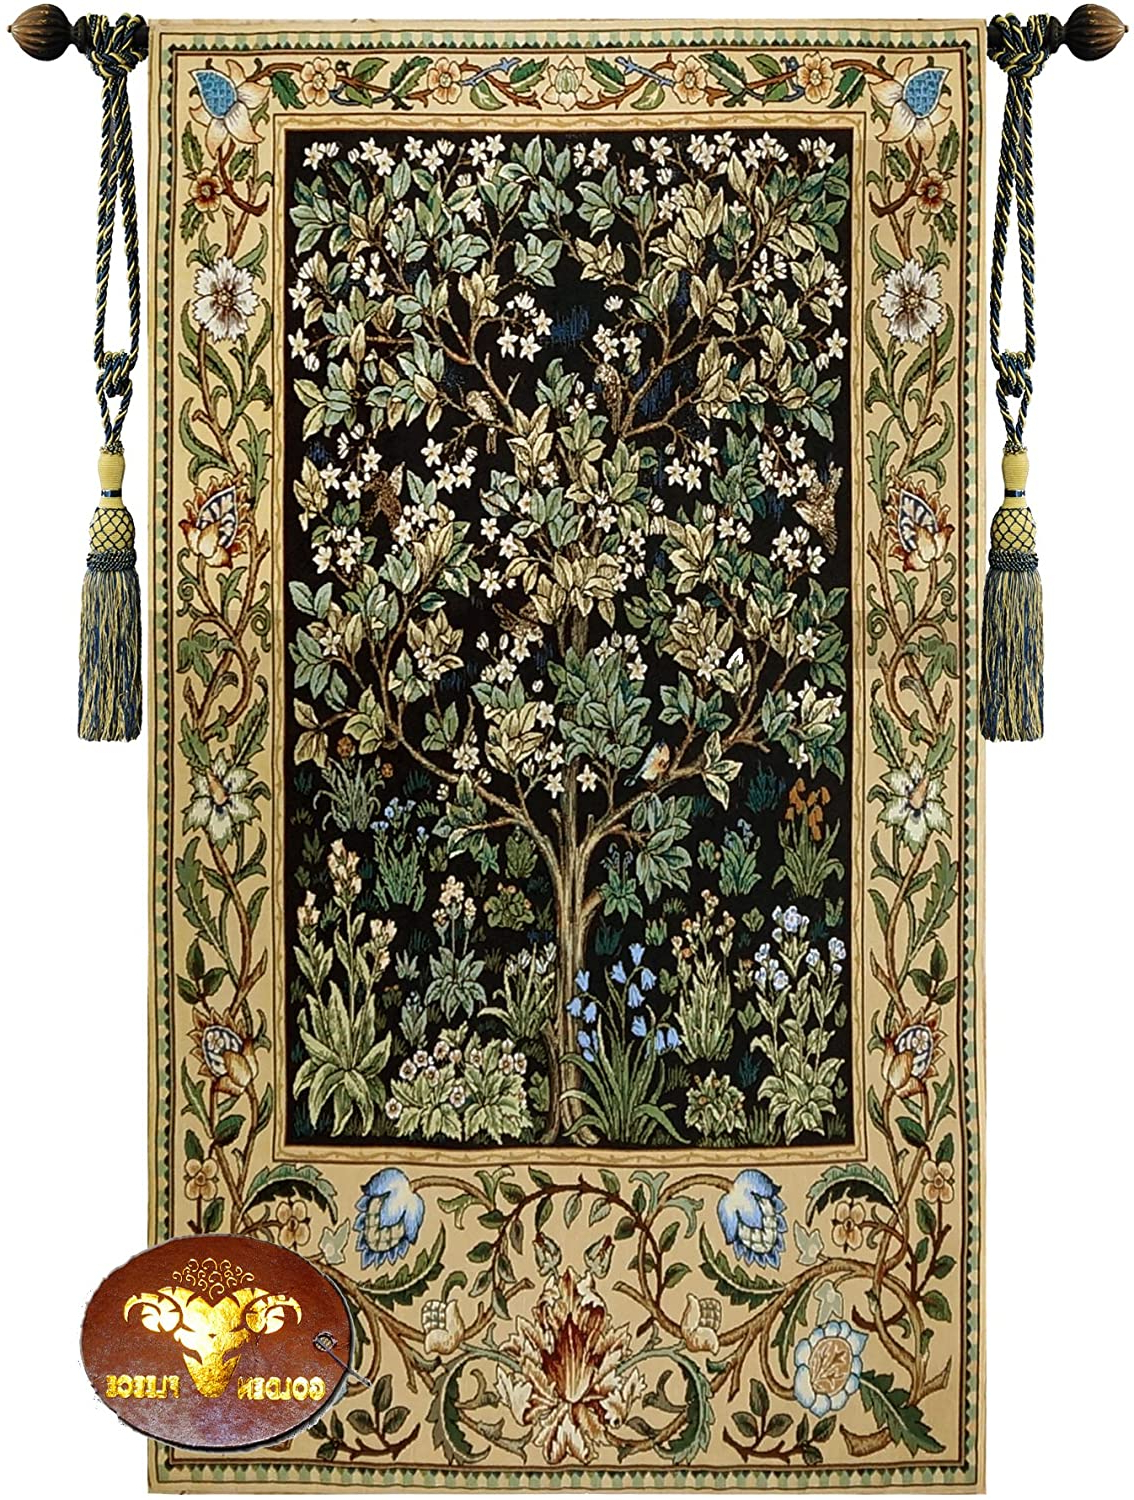 Widely Used Blended Fabric Pastel Tree Of Life Wall Hangings Throughout Beautiful Large Tree Of Life (b) William Morris Fine Tapestry Jacquard Woven Wall Hanging Art Decor (View 3 of 20)